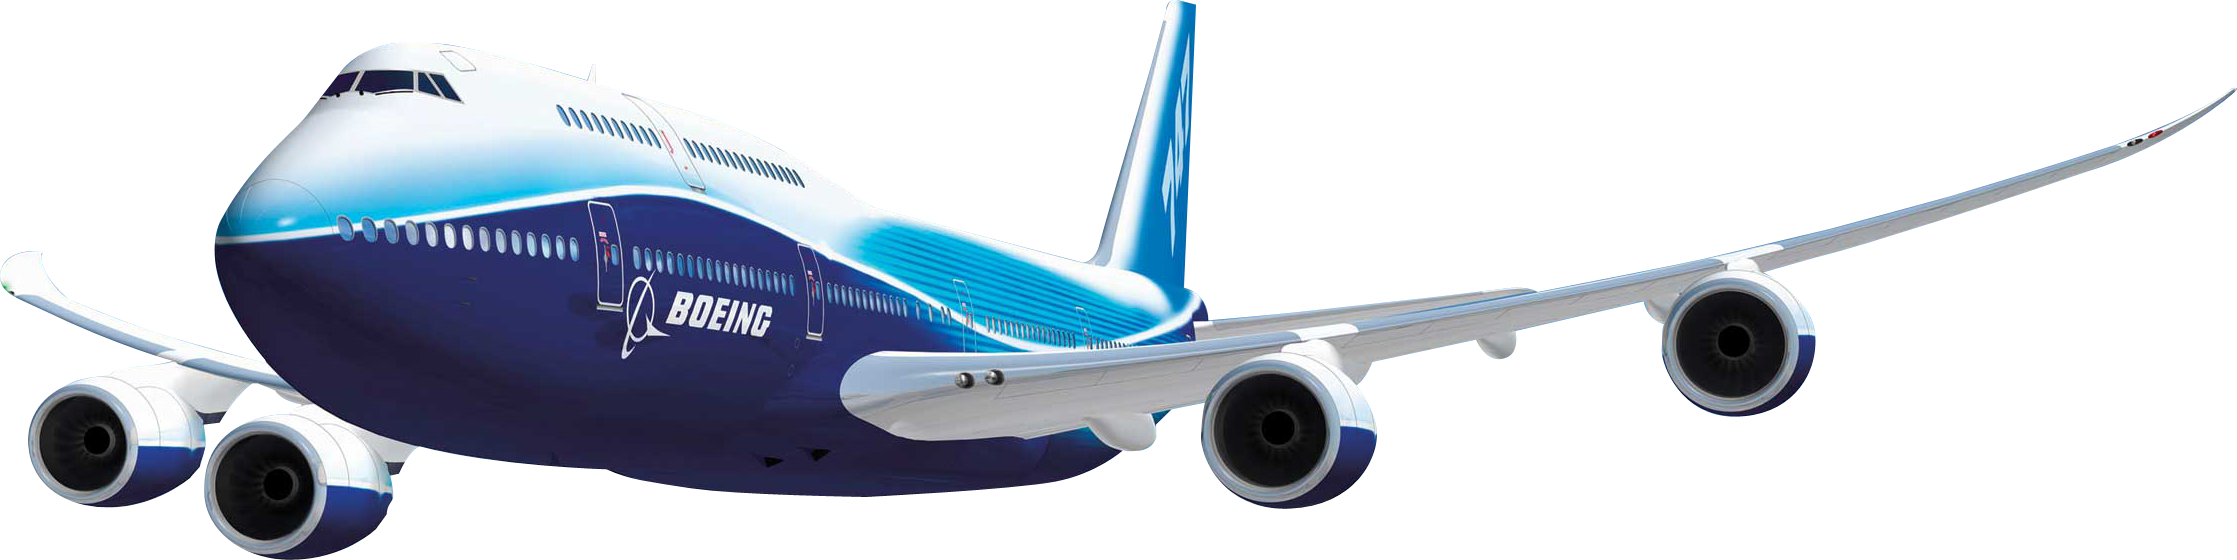 Planes png images free. Universe clipart aerospace